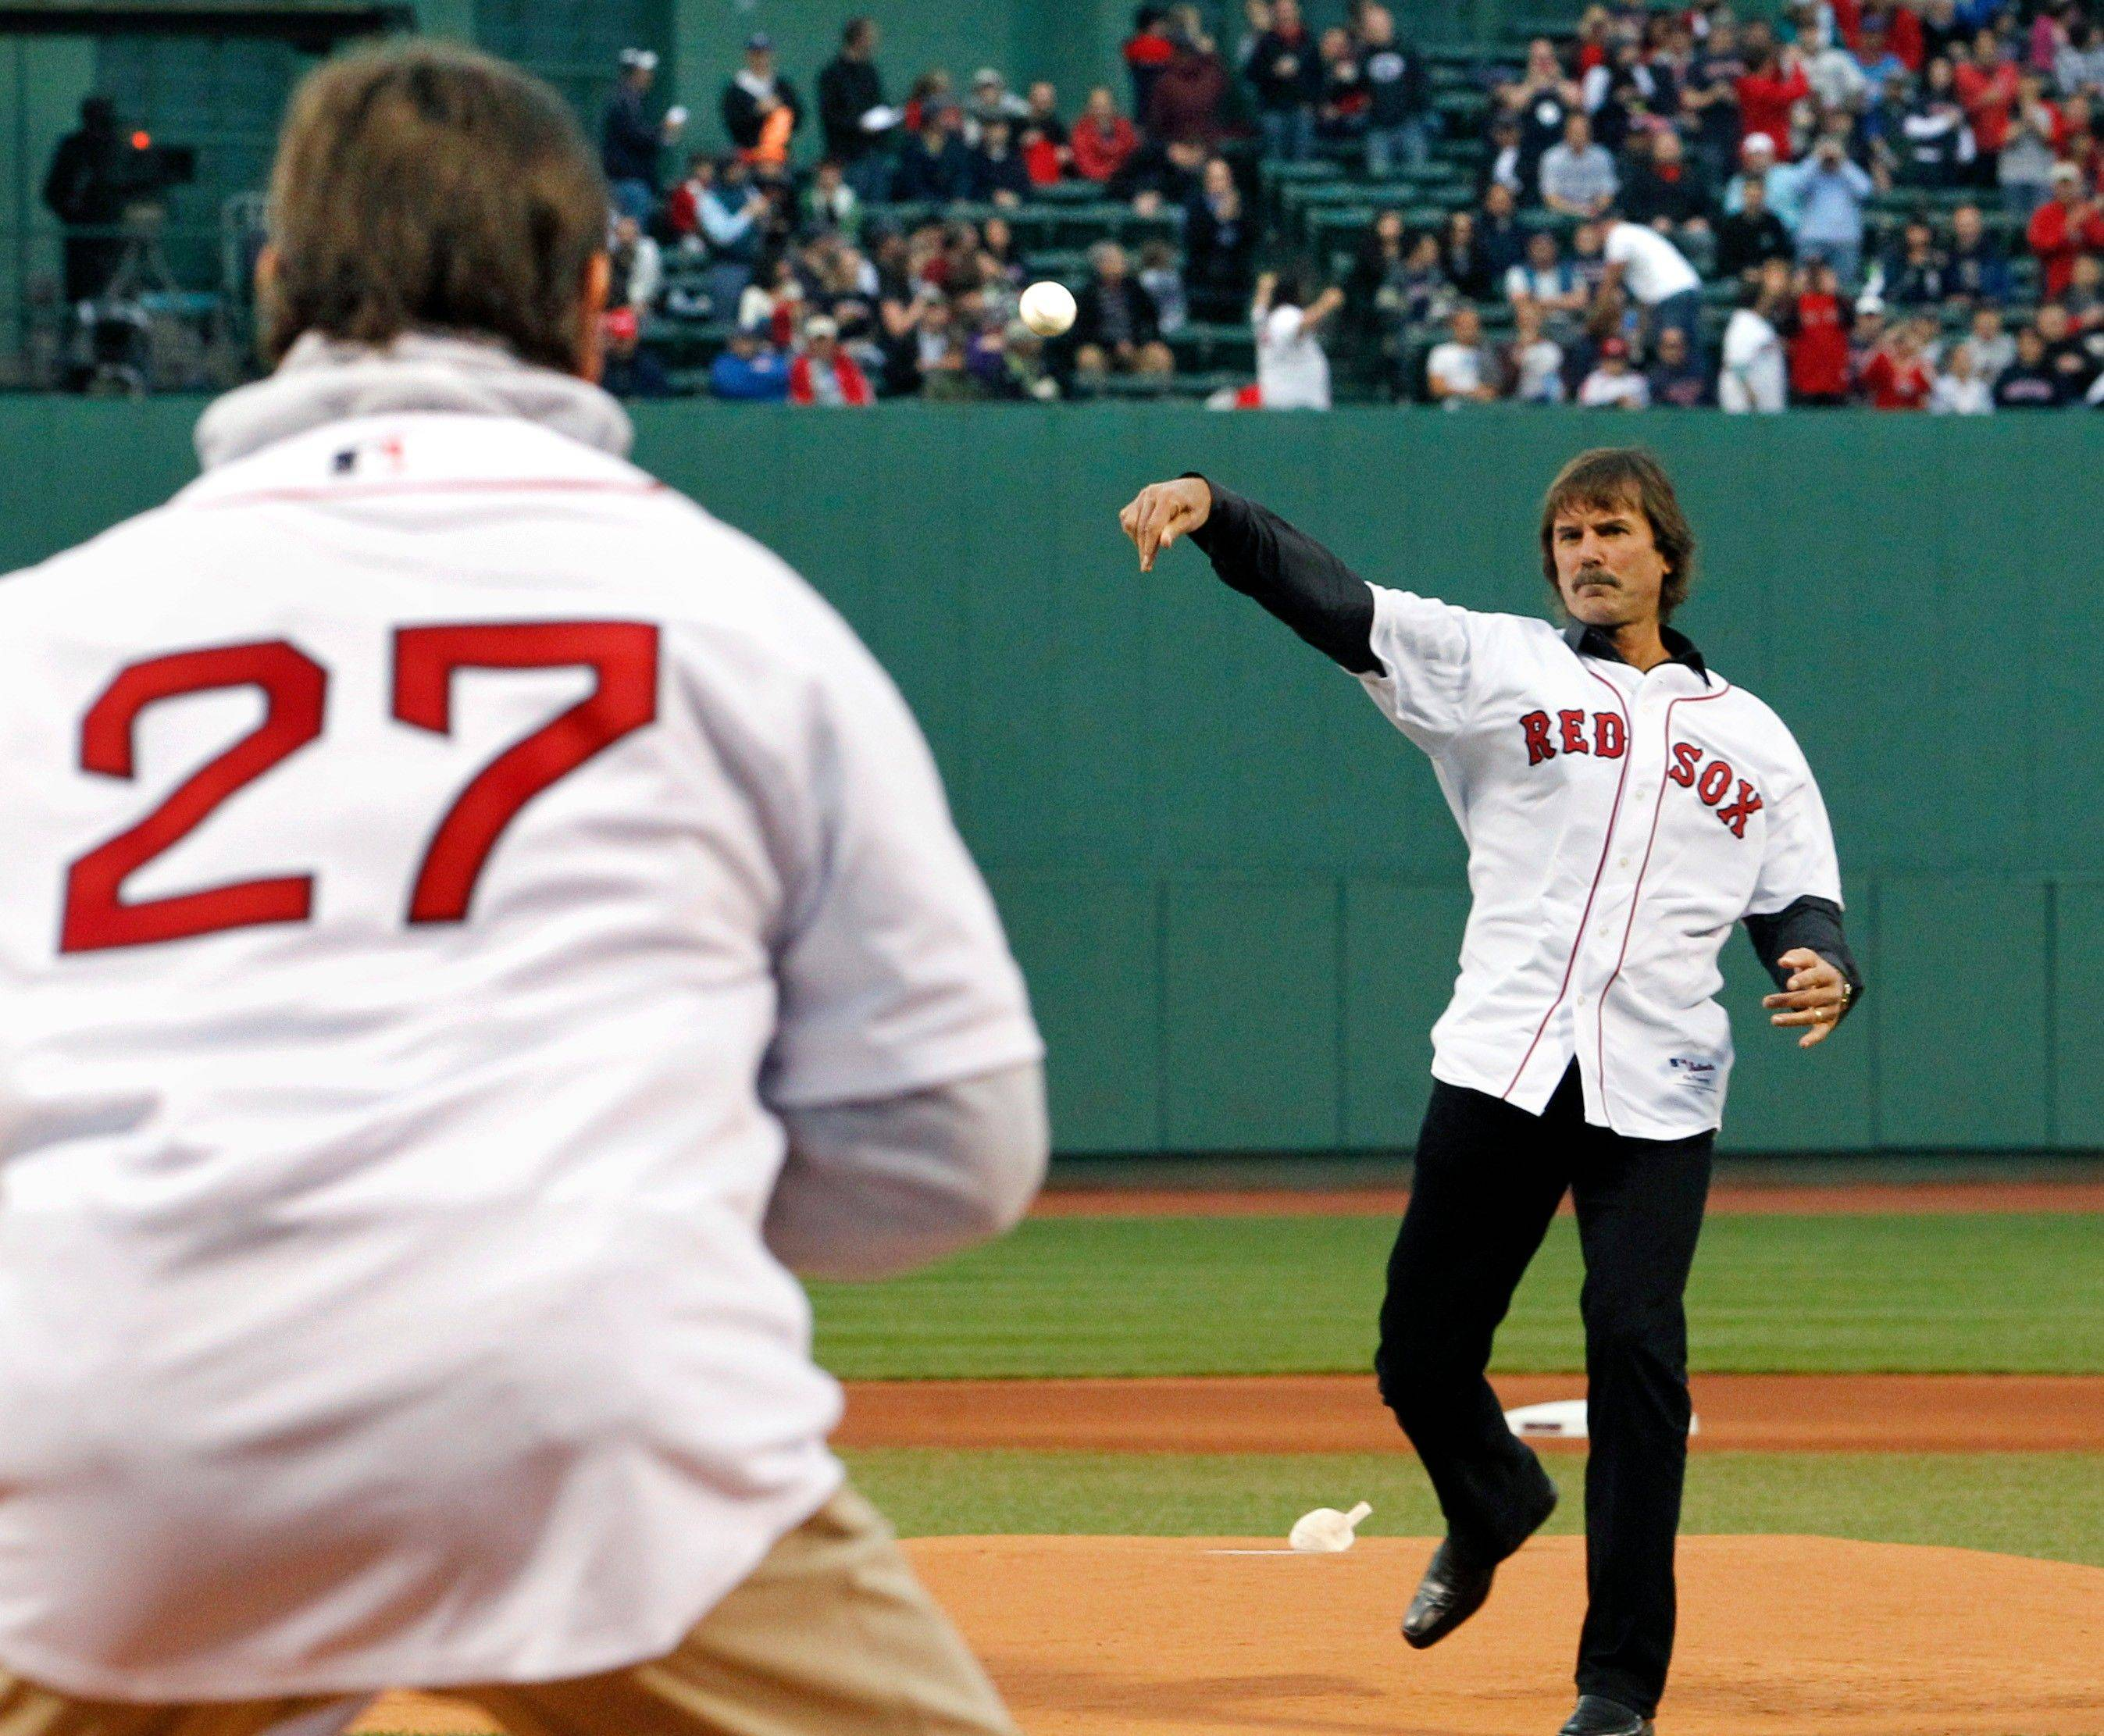 Boston Red Sox legend, pitcher Dennis Eckersley, right, and catcher Carlton Fisk (27) participate in the honorary first pitch prior to an interleague baseball game against the Chicago Cubs at Fenway Park in Boston Friday, May 20, 2011.